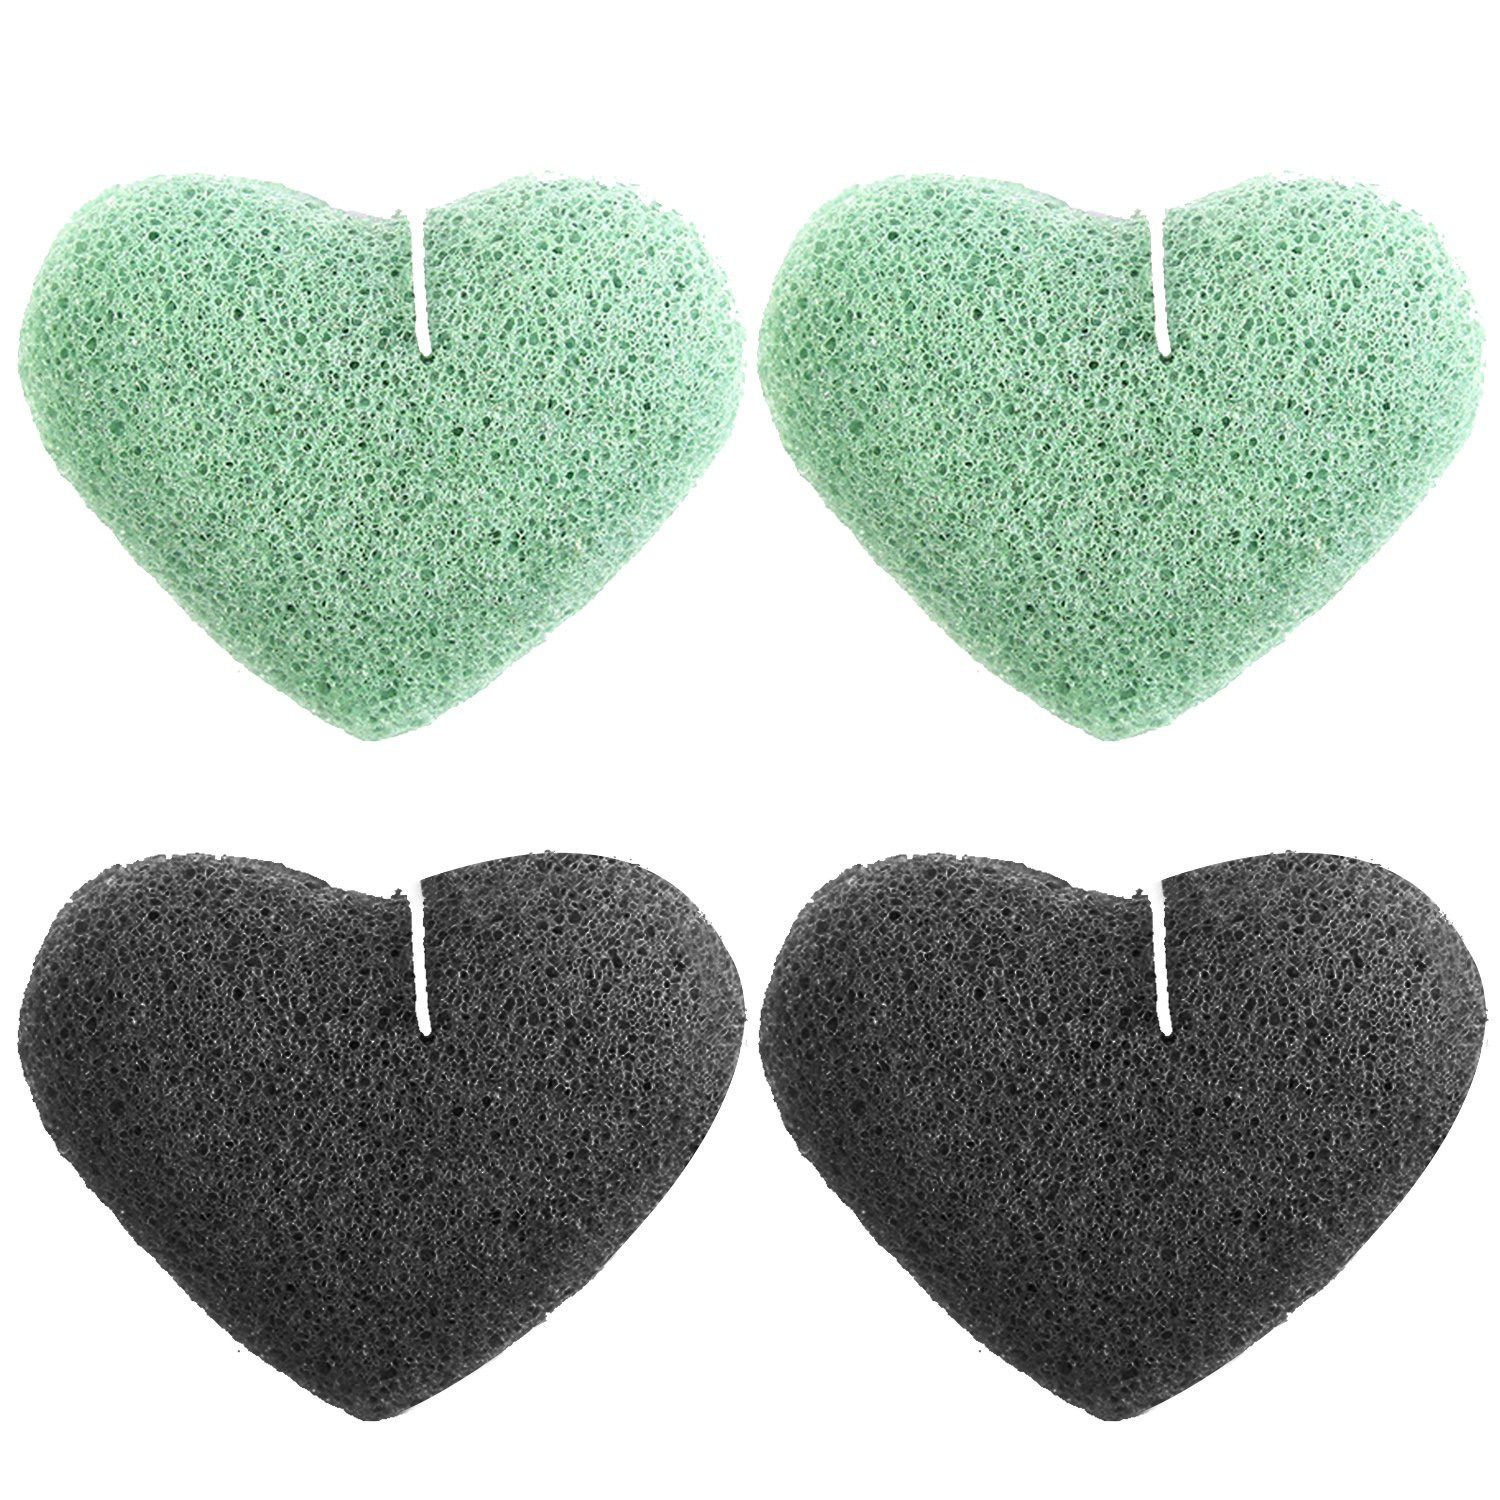 4 PCS 2 Colors Soft Natural Konjac Sponge Facial Body Cleaning Sponges for Eliminating Dirt Oil Blackheads Smoothing Skin Love Heart Style Vococal